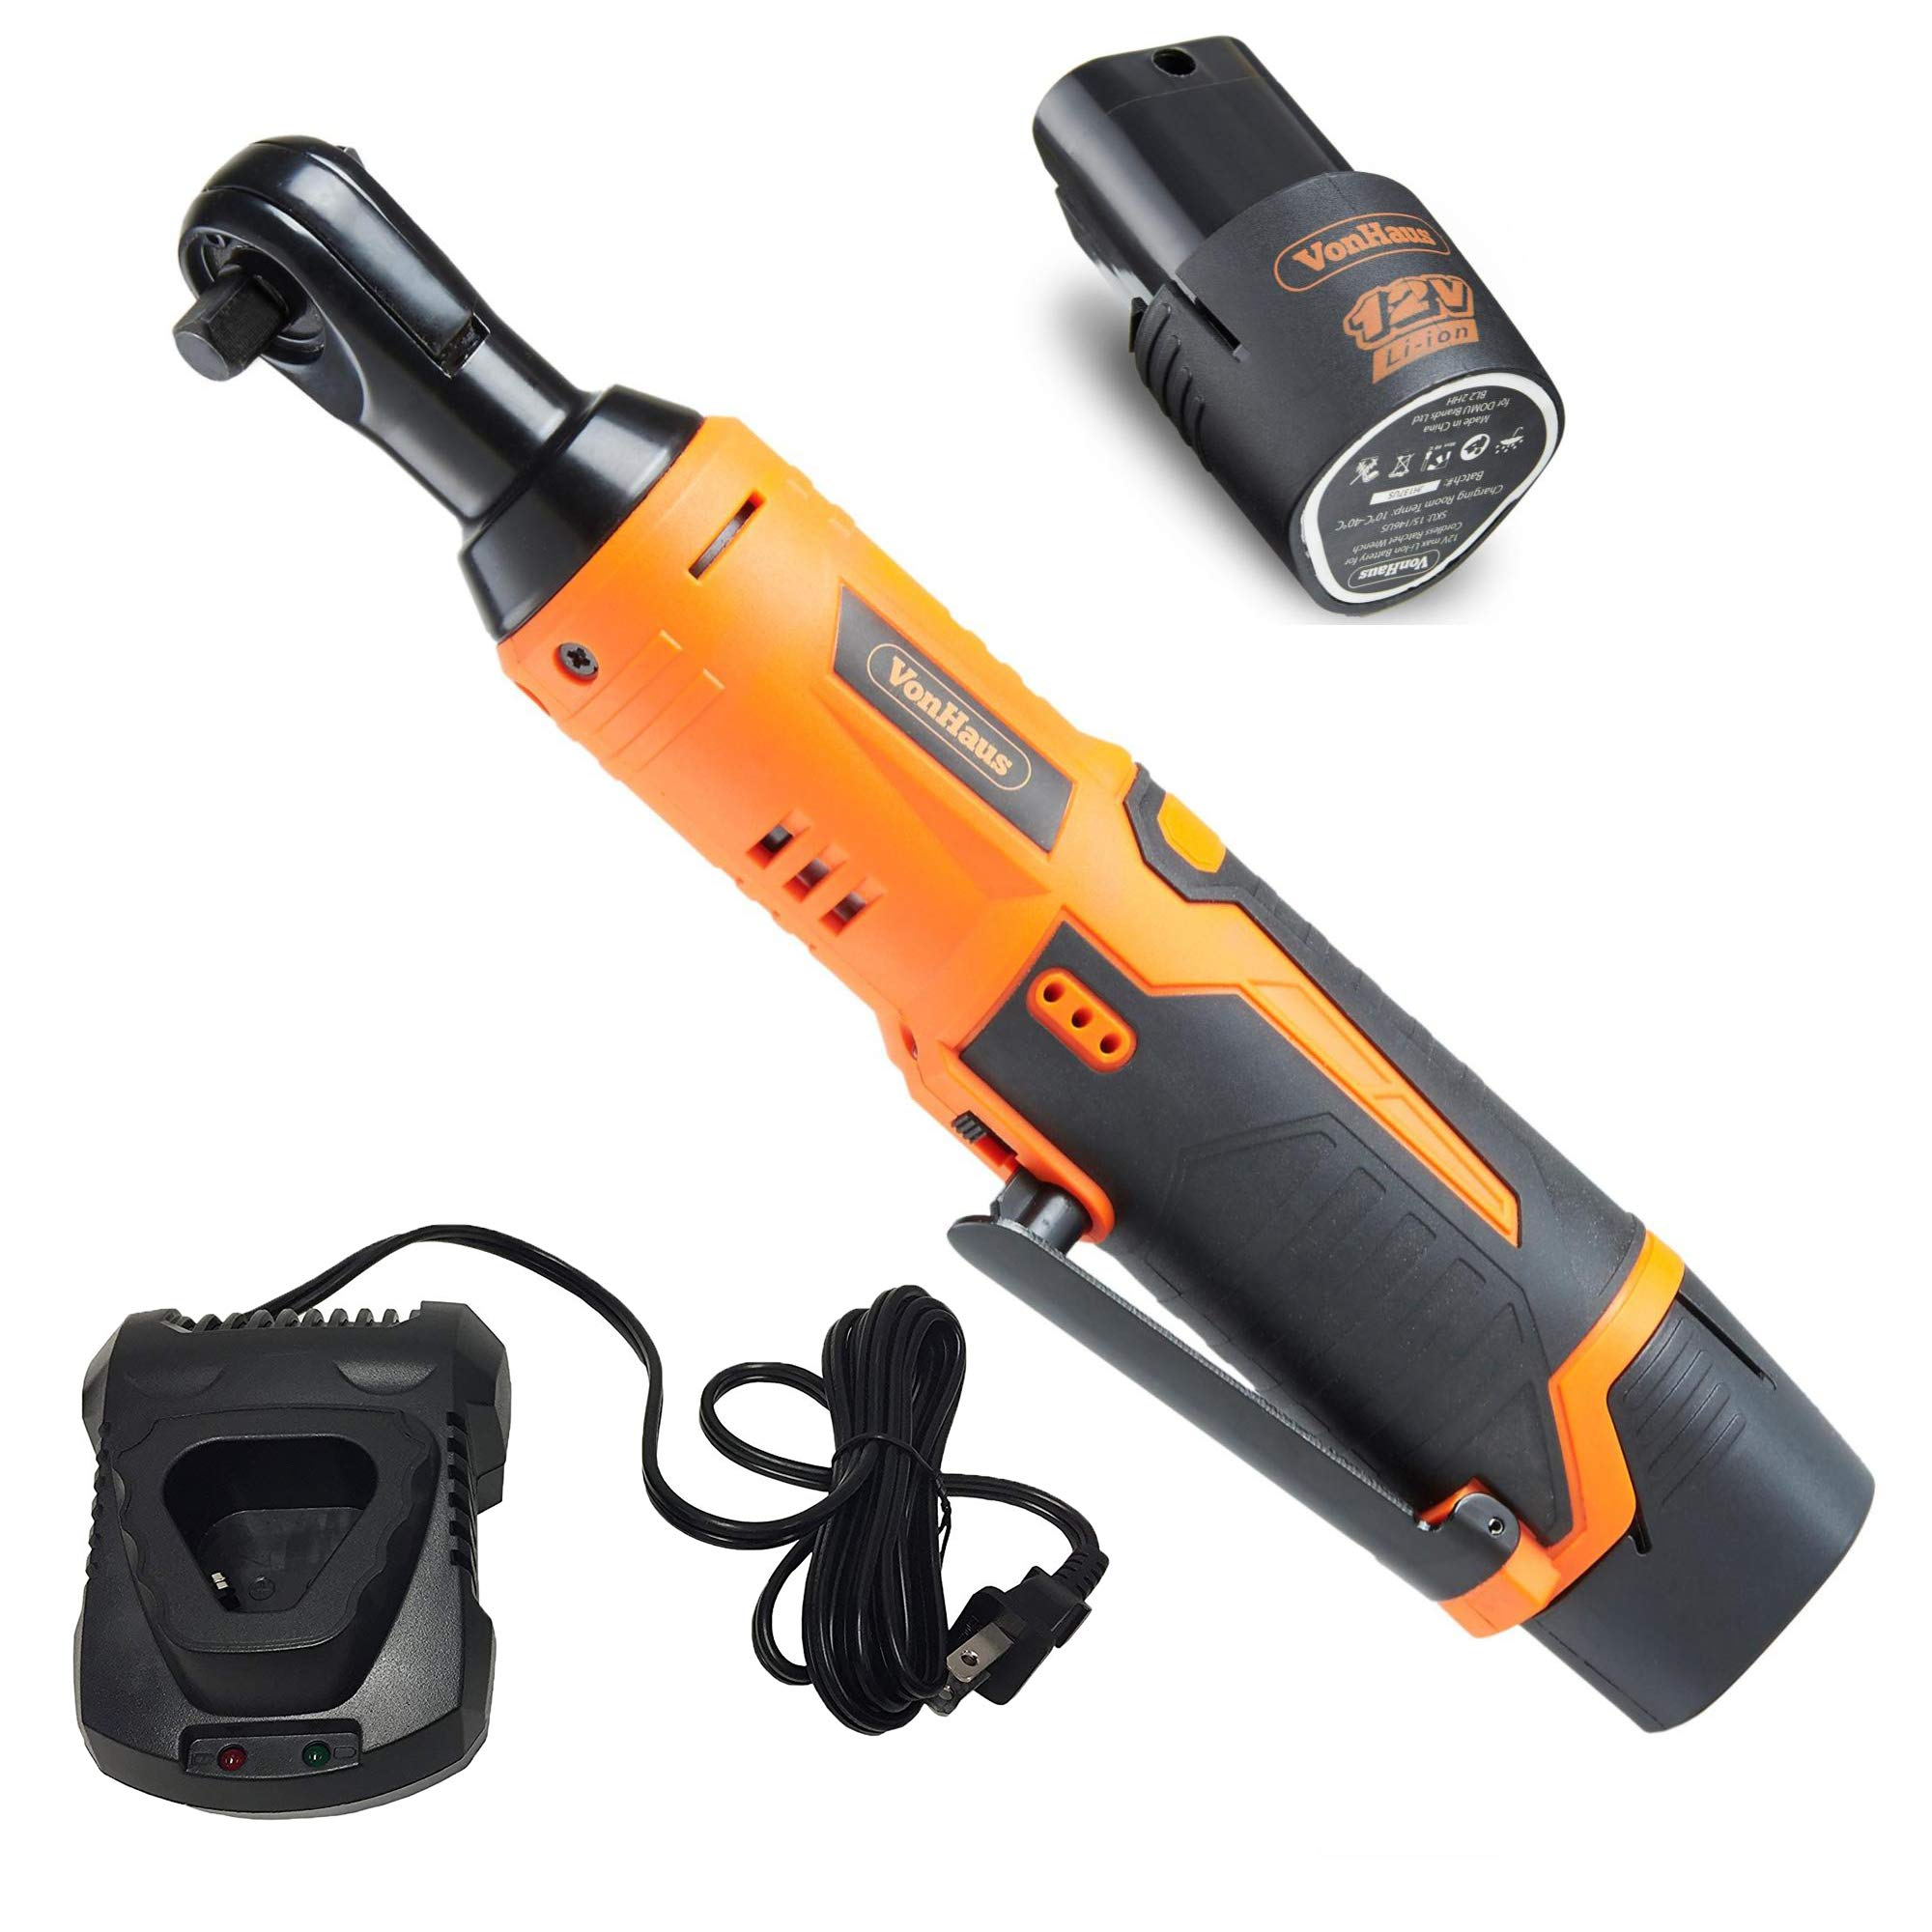 VonHaus Cordless Electric Ratchet Wrench Set with 12V Lithium-Ion Battery and Charger Kit 3/8'' Drive 15/145US by VonHaus (Image #1)